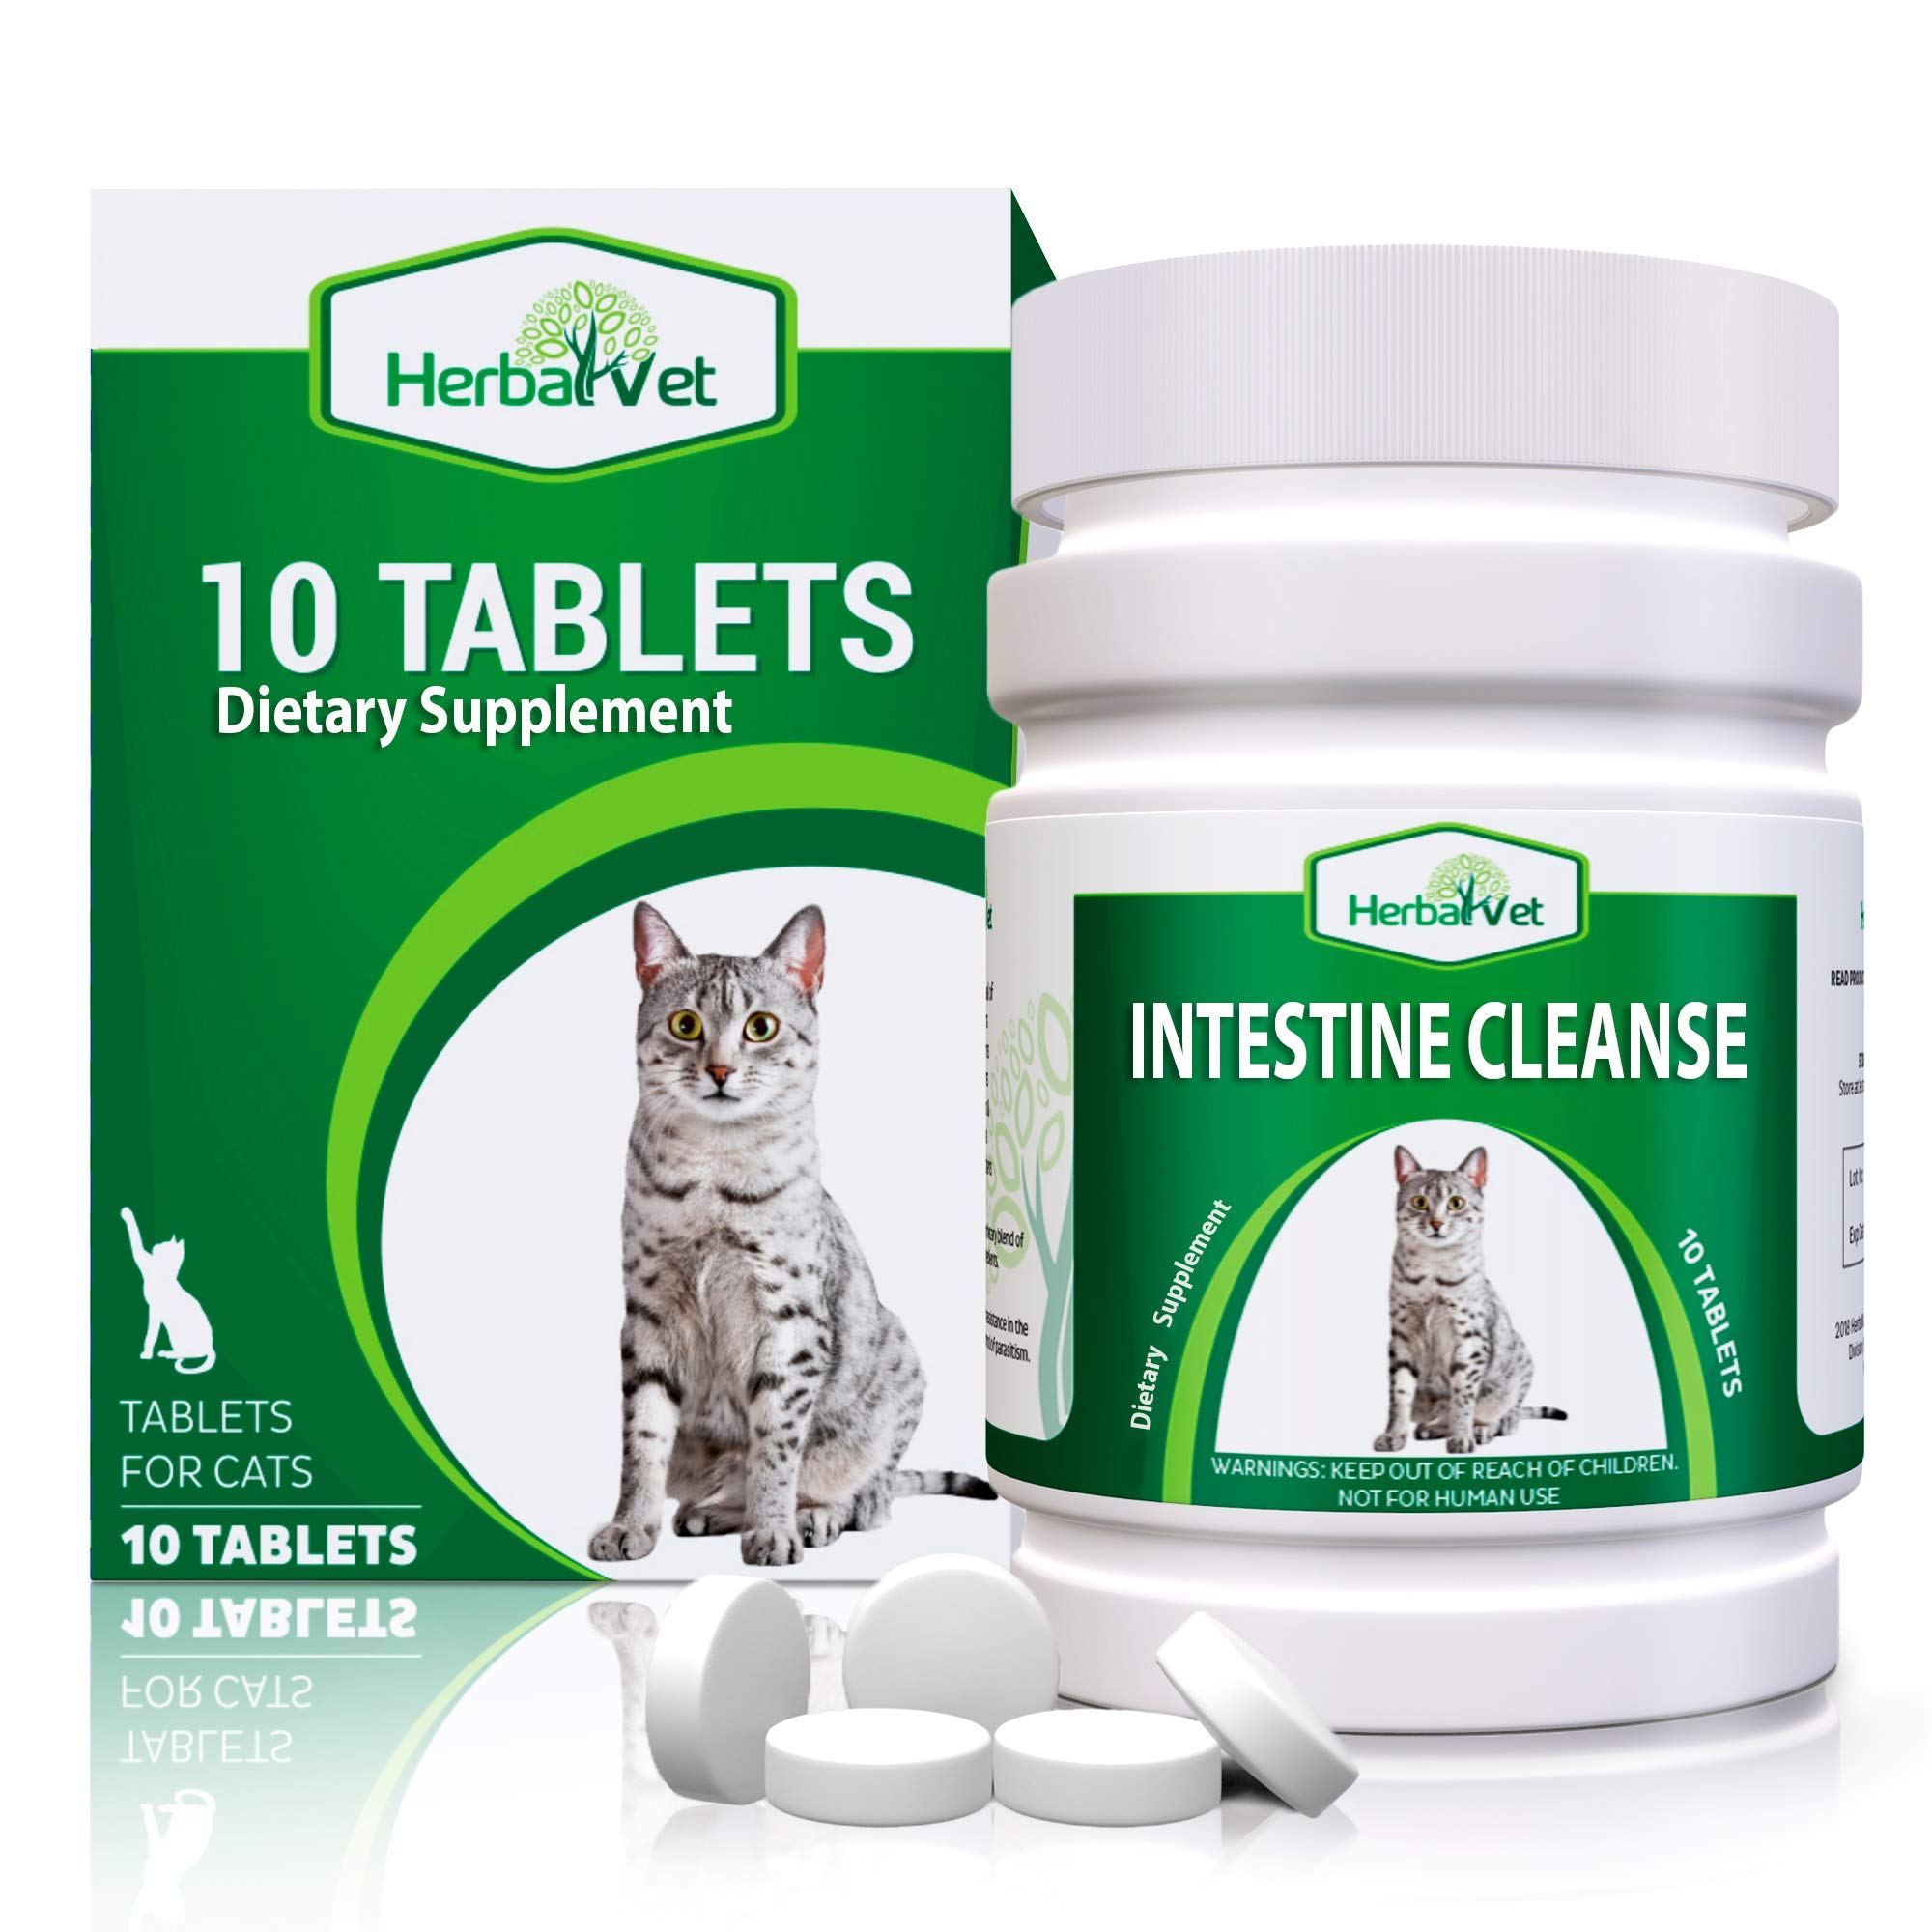 HerbalVet 10 Pack Cat Intestinal Cleanse   Cat Dewormer Alternative   Natural Cleansing Tablets for Cats, Promotes Intestinal Health   10 Tablets, Works for Kittens   Helpful E-Book Included